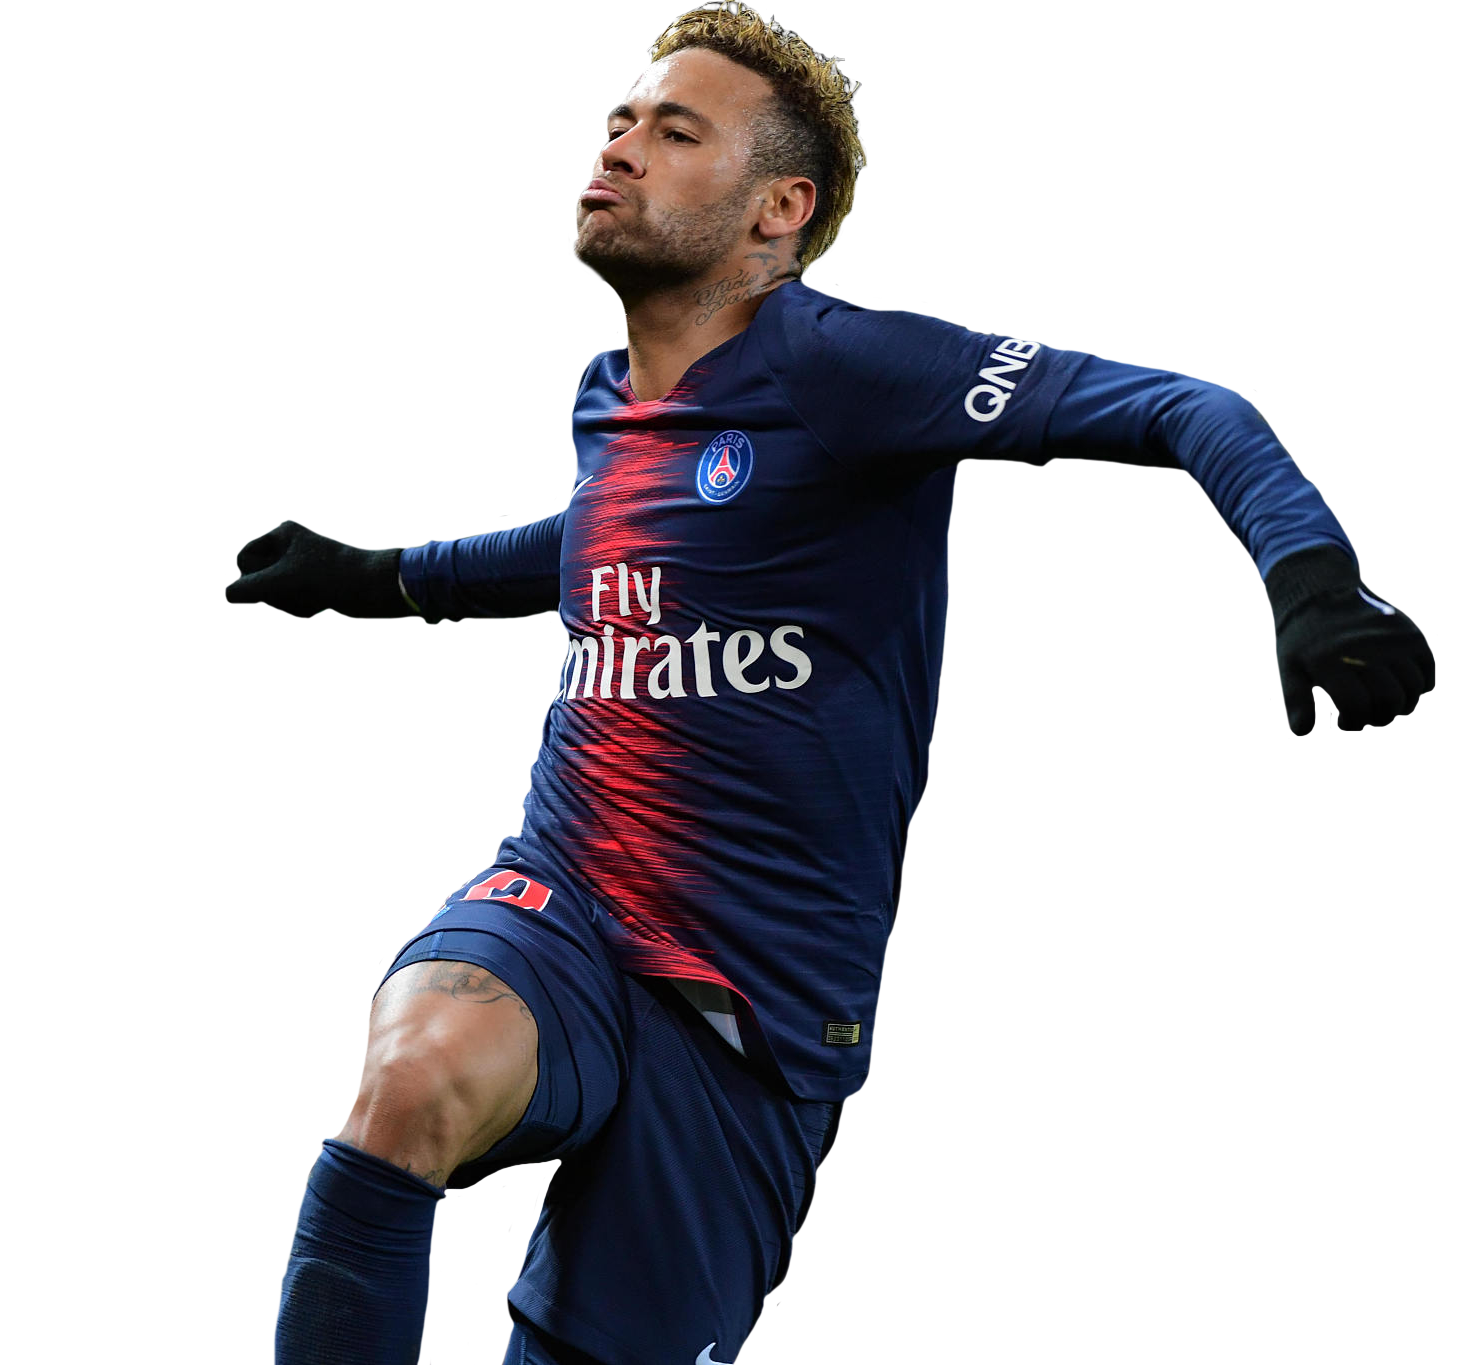 Neymar Jr Render Paris Saint Germain By Tychorenders On Deviantart